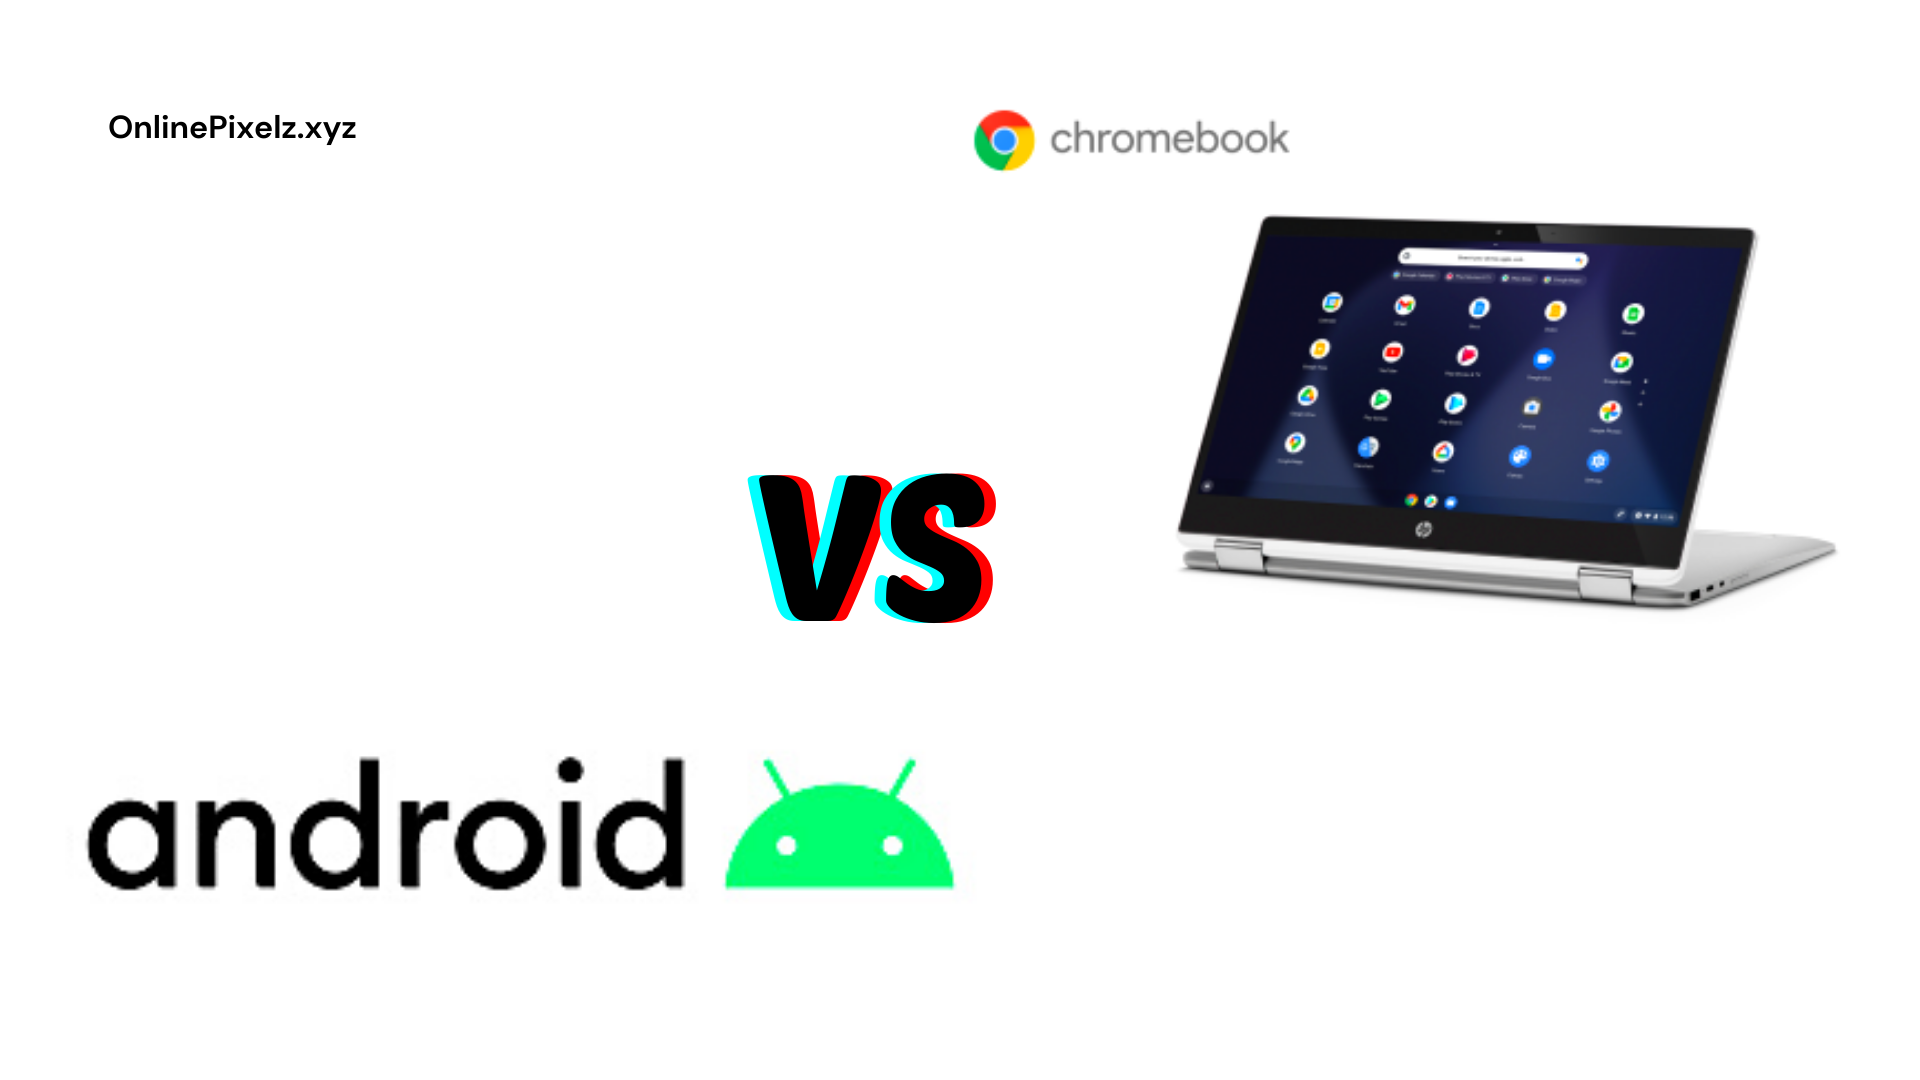 Chromebook vs Android